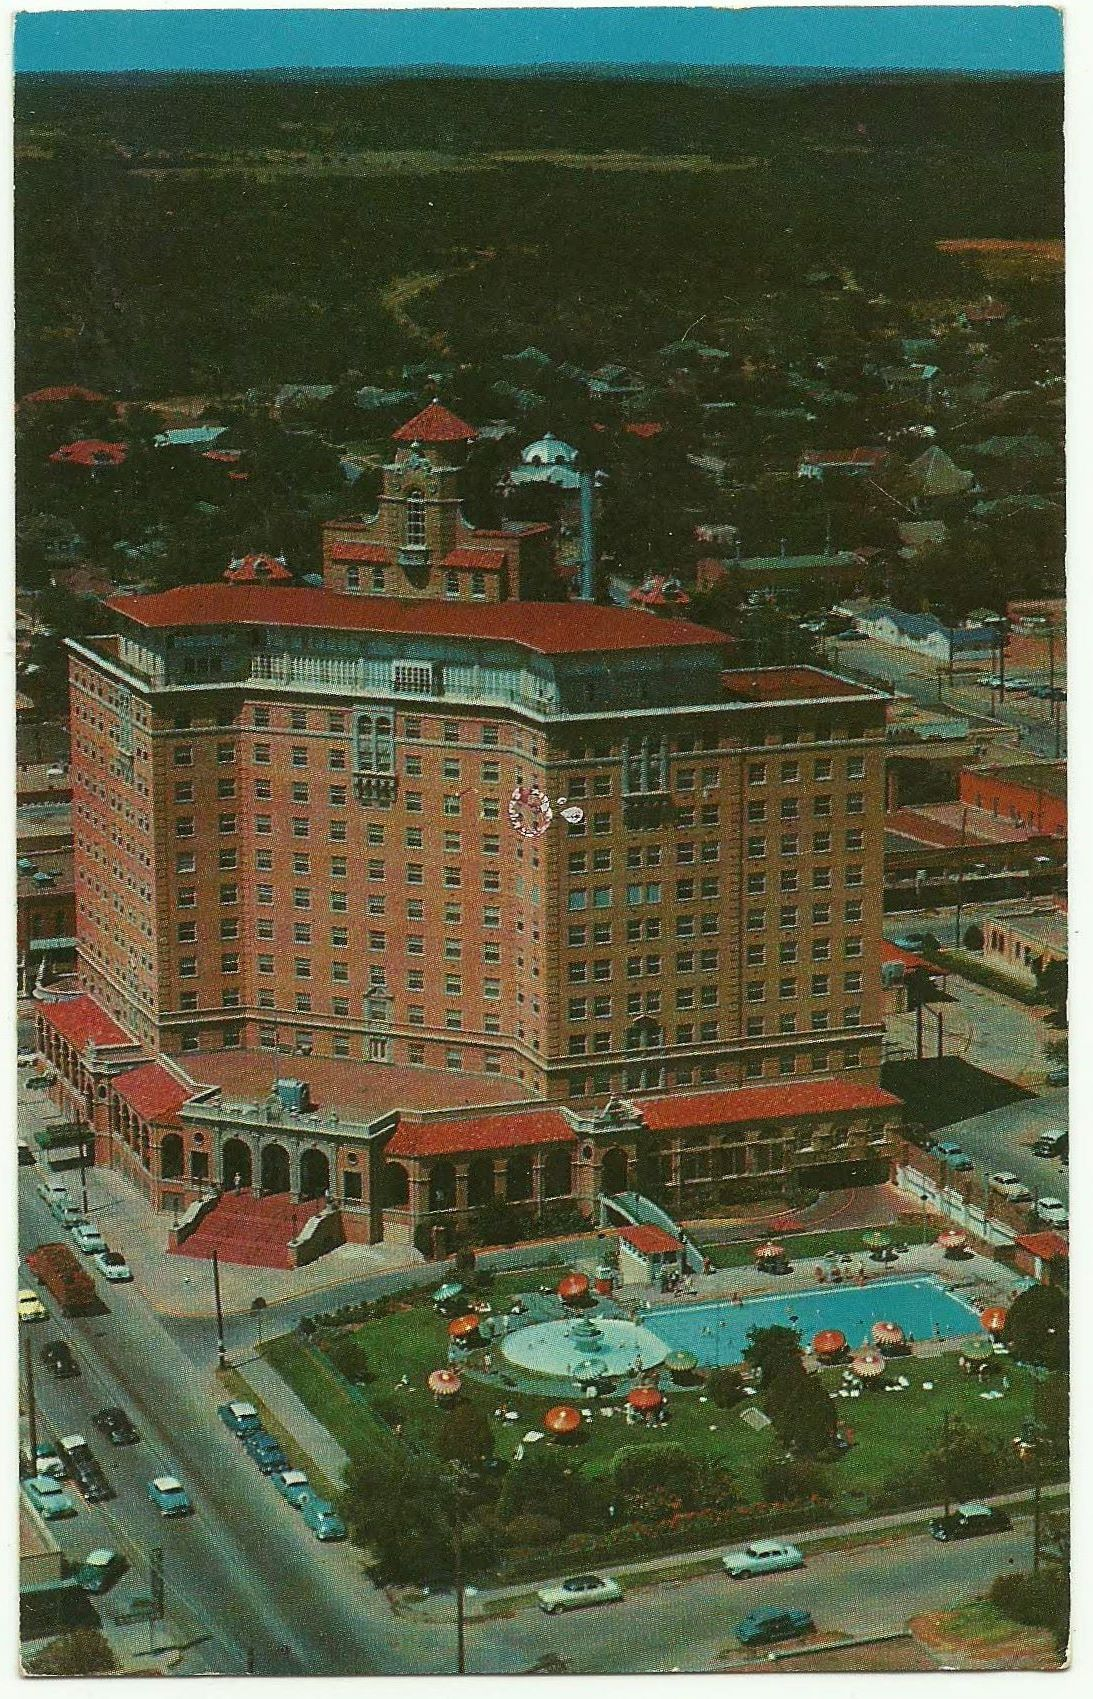 The Baker Hotel Mineral Wells Tx Postmarked 1958 But Now It S Haunted And Creepy